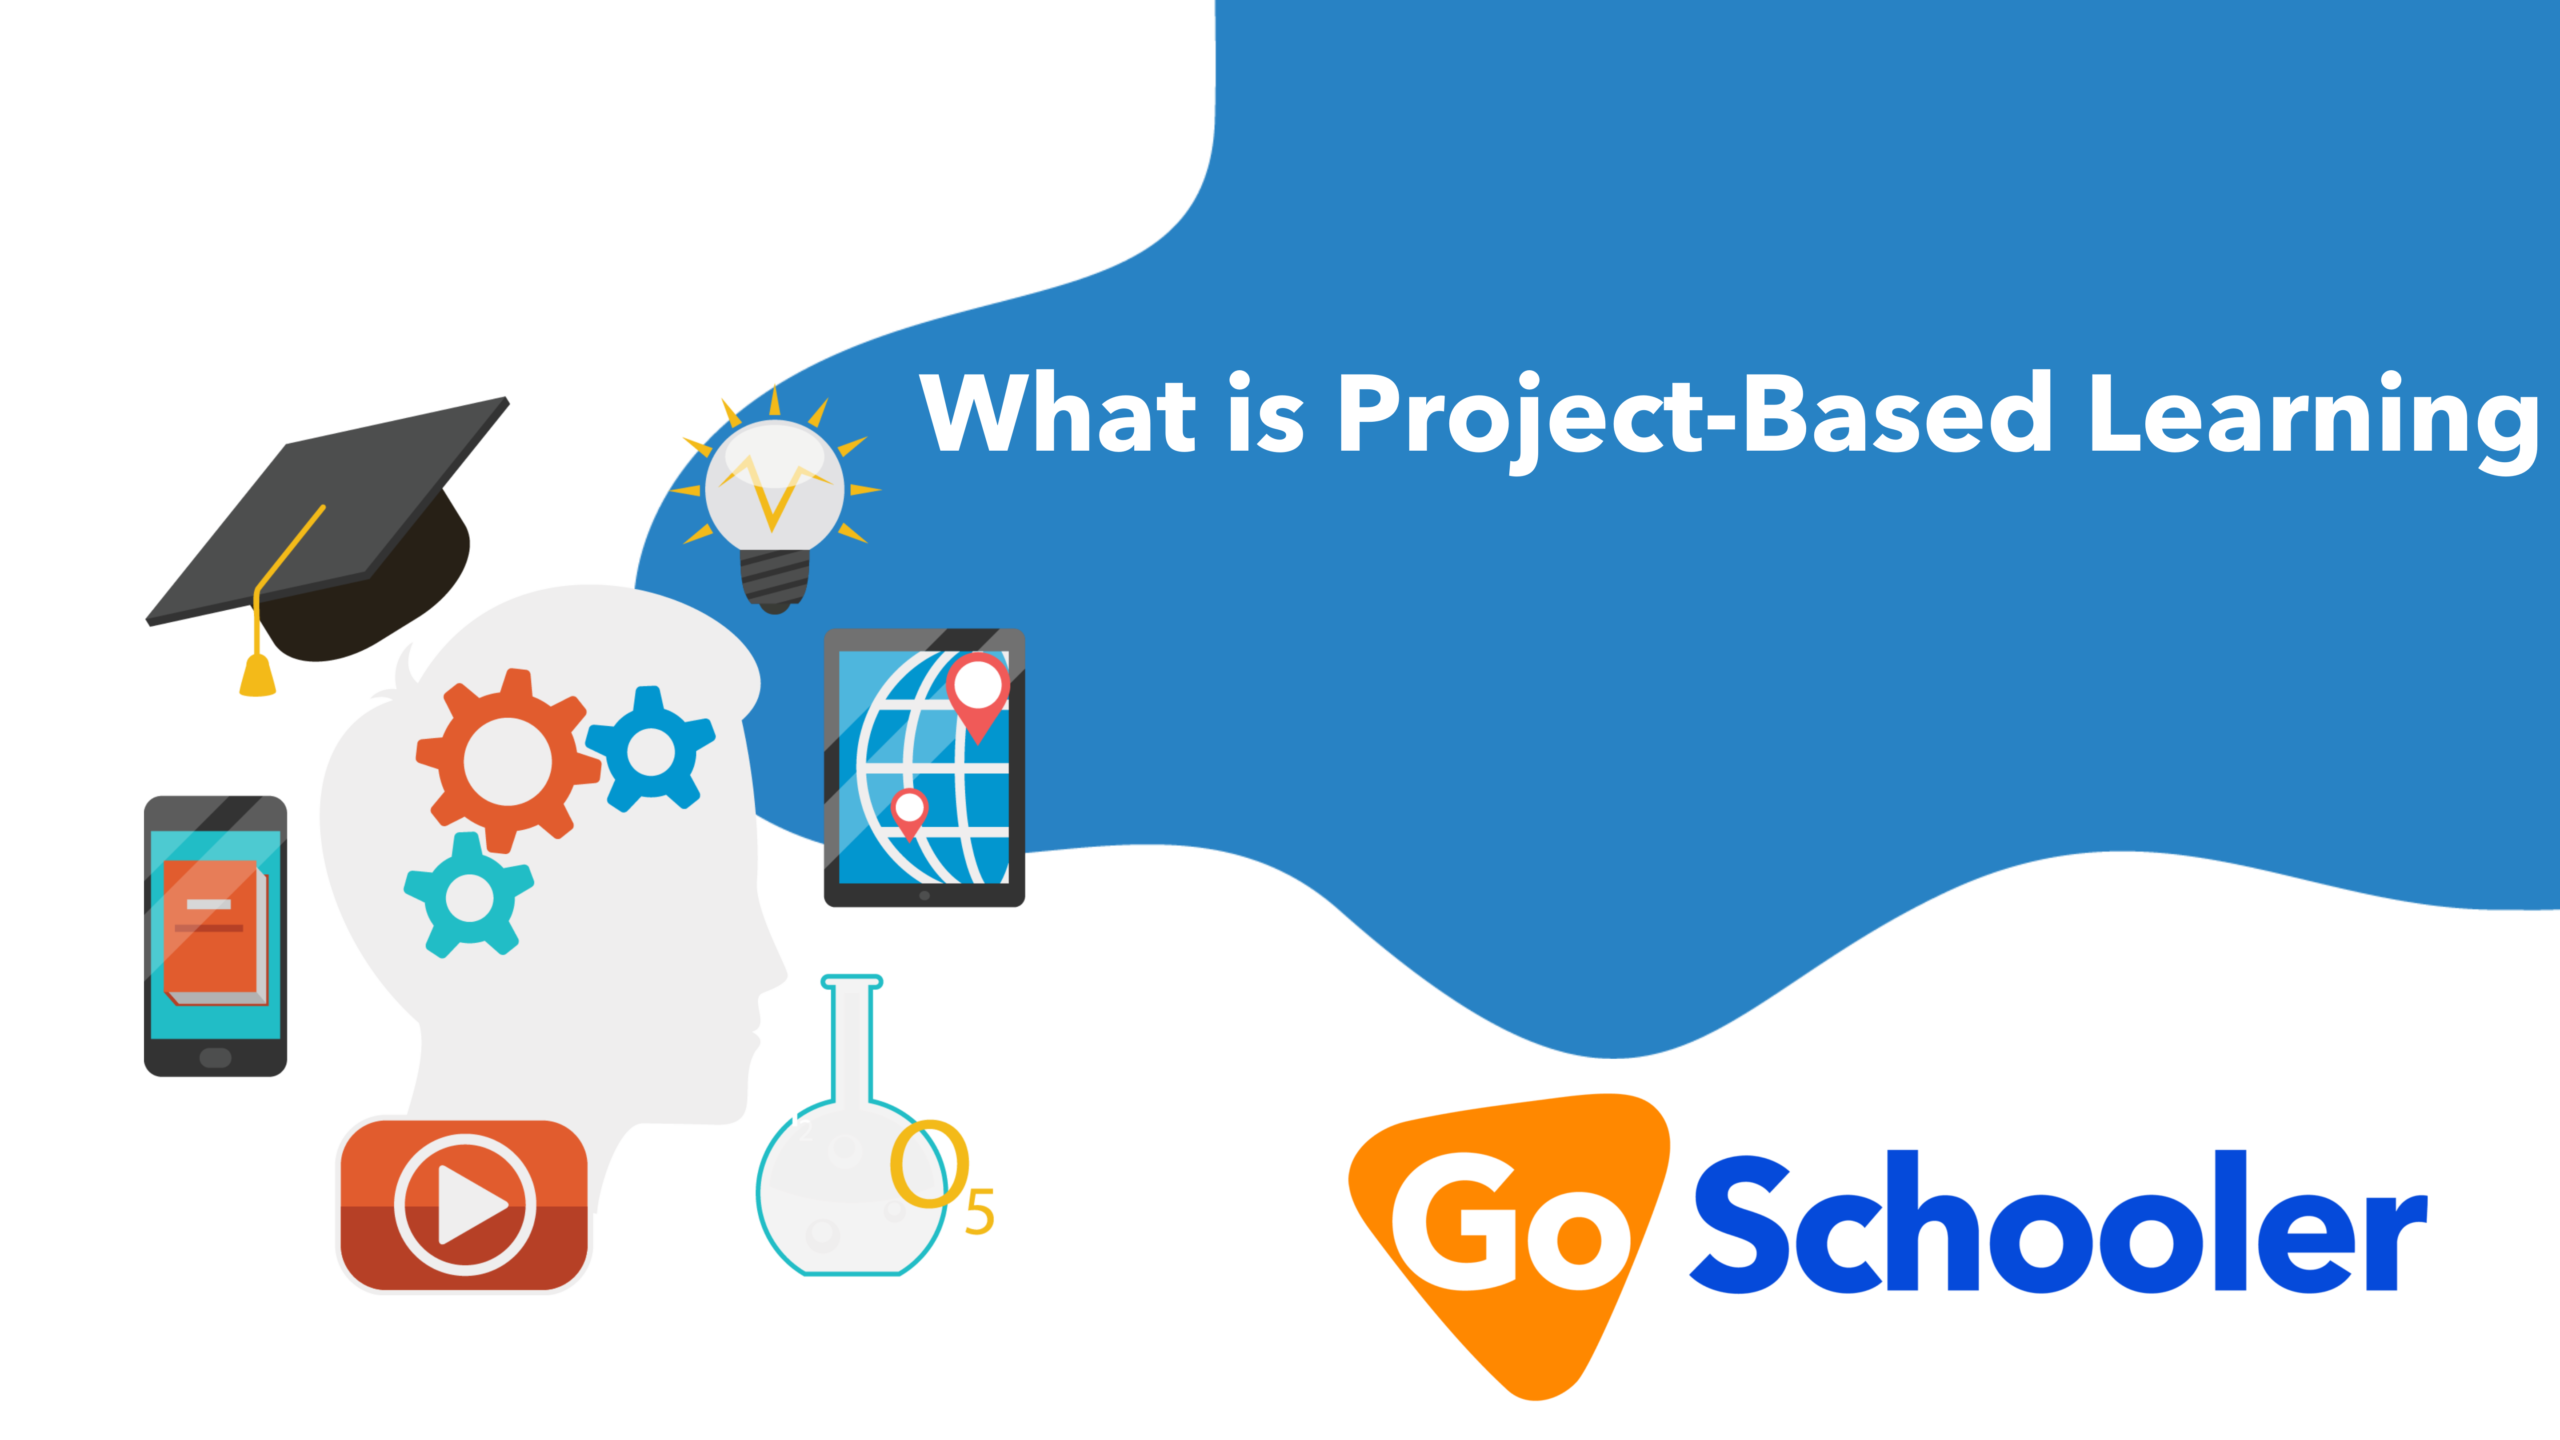 What is Project-Based Learning